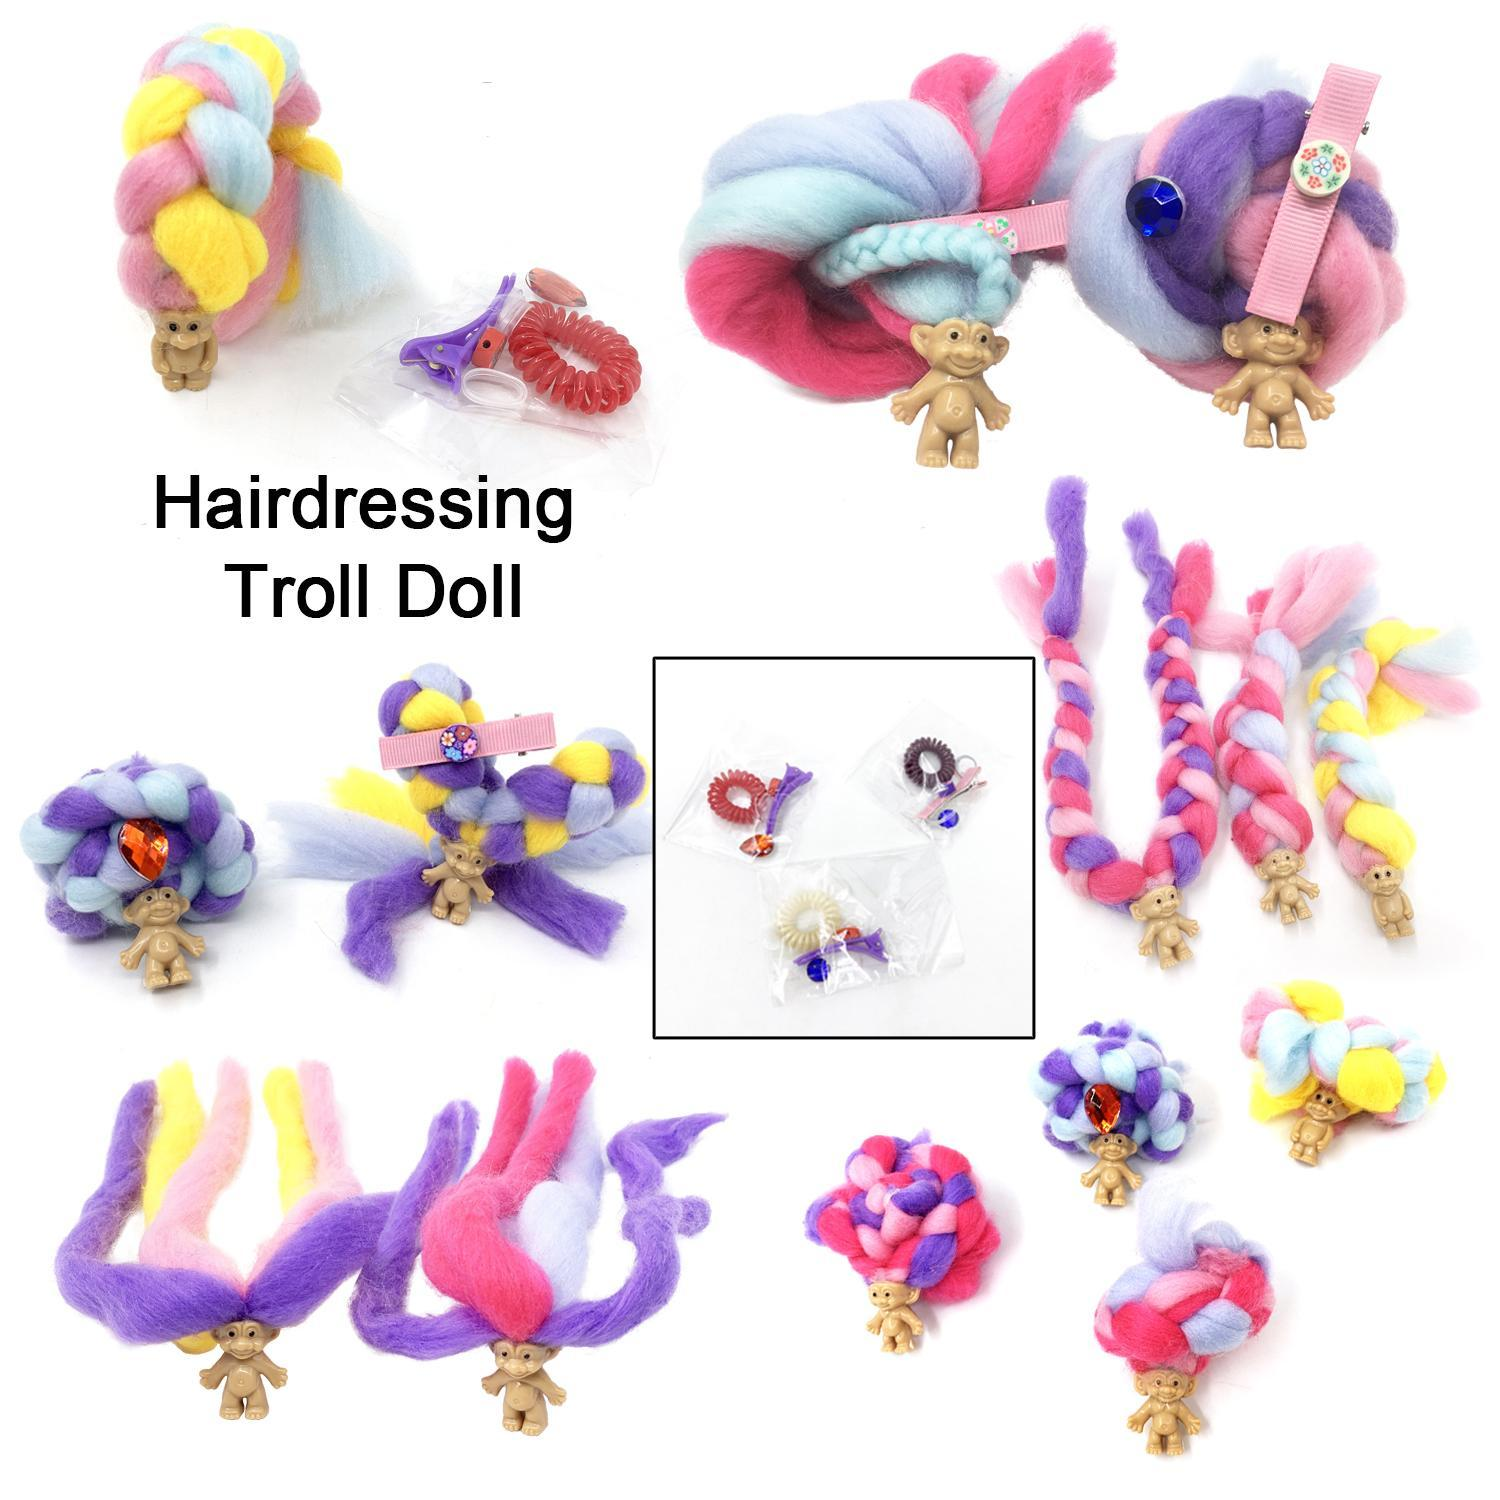 Mini Troll Doll Long Hair Marshmallow Candy Sweet Treat Toys Hobbies Dolls Accessories Surprise Hairstyle Doll